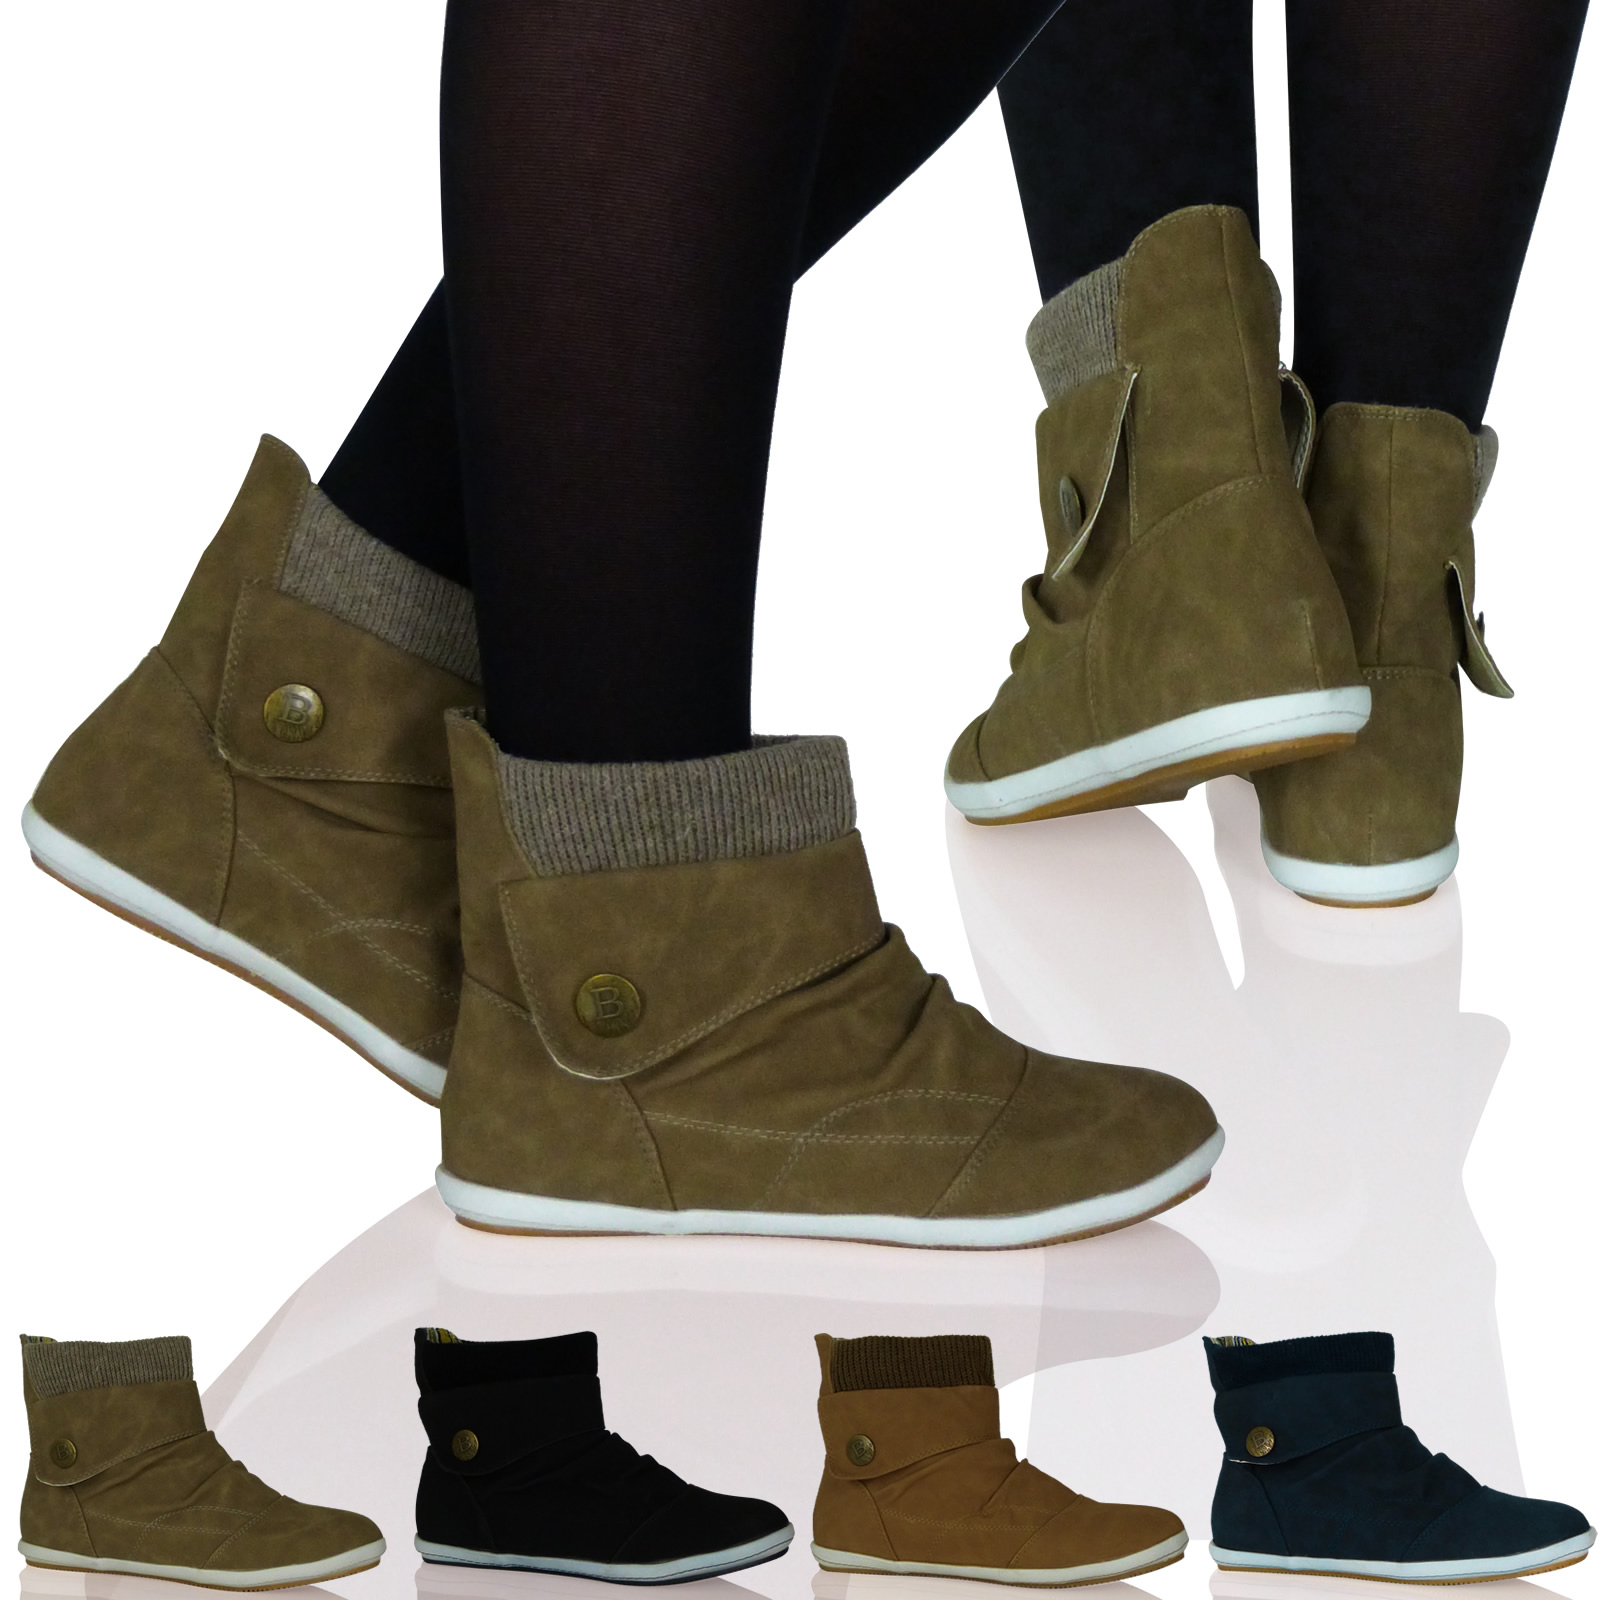 Perfect Flat Or Low Heeled Booties Do You Do It? And If You Do Are You Tall? Do You Have To Be Tall ...